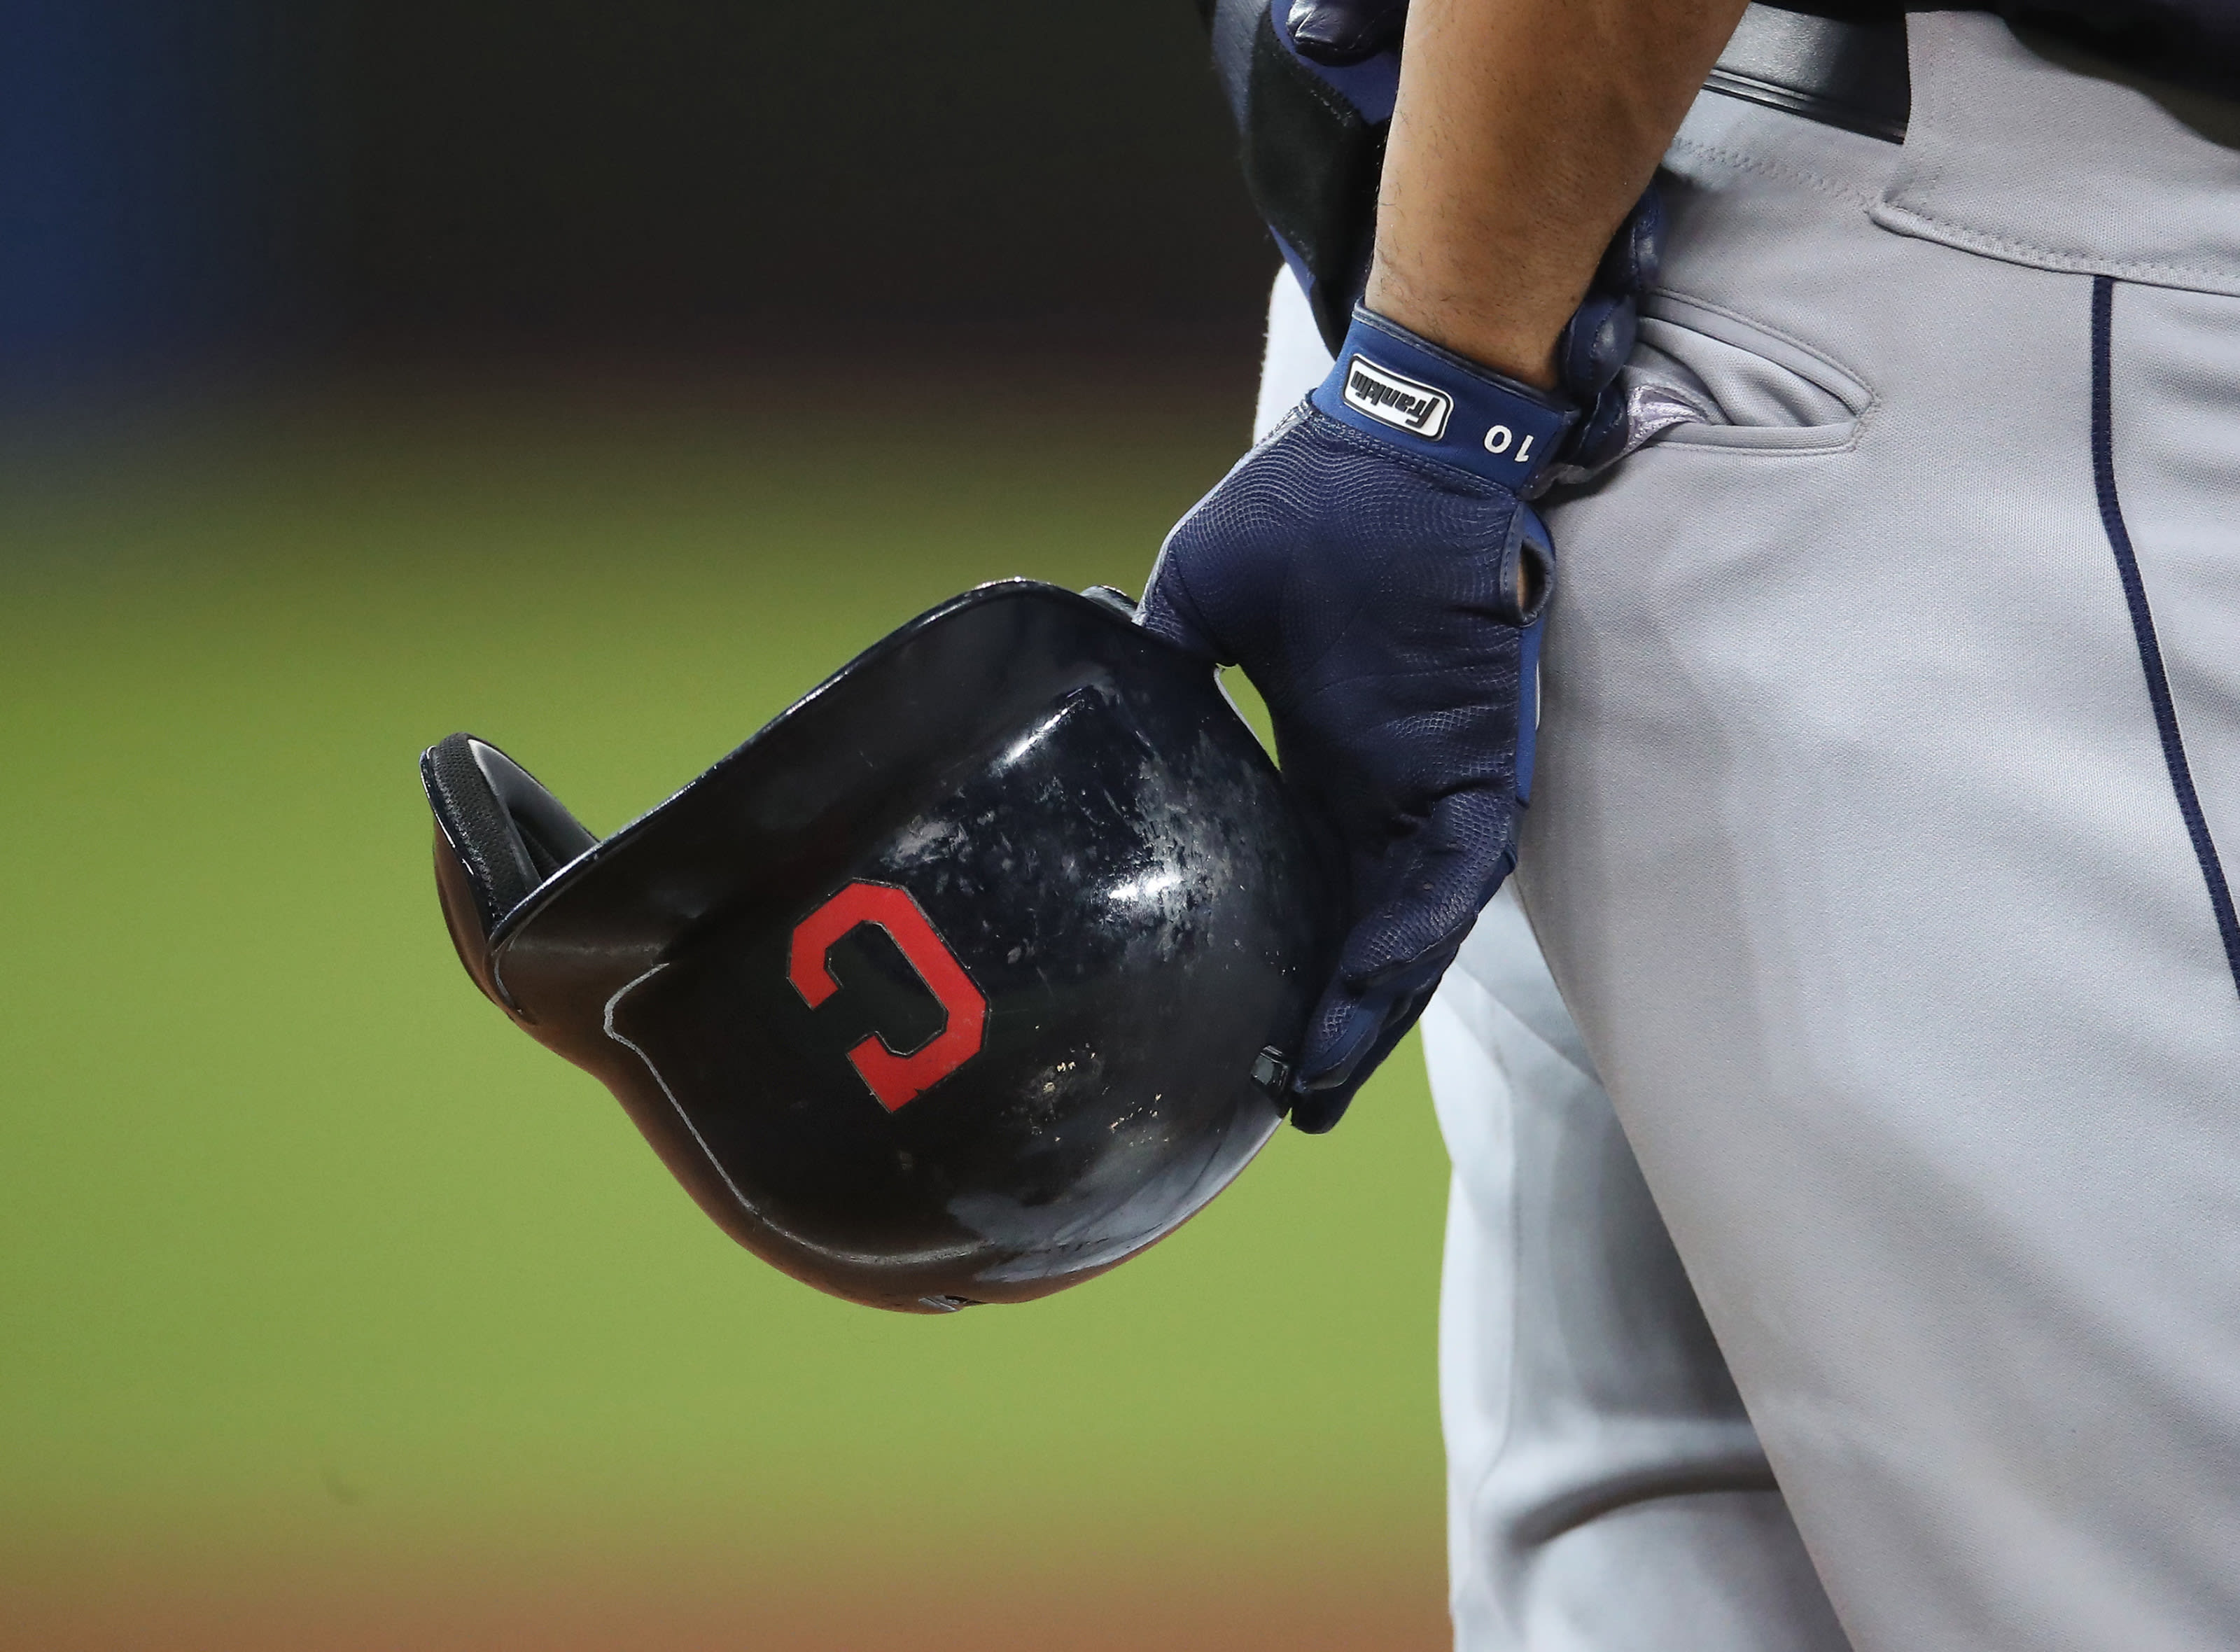 The Cleveland Indians helmet with a block C.